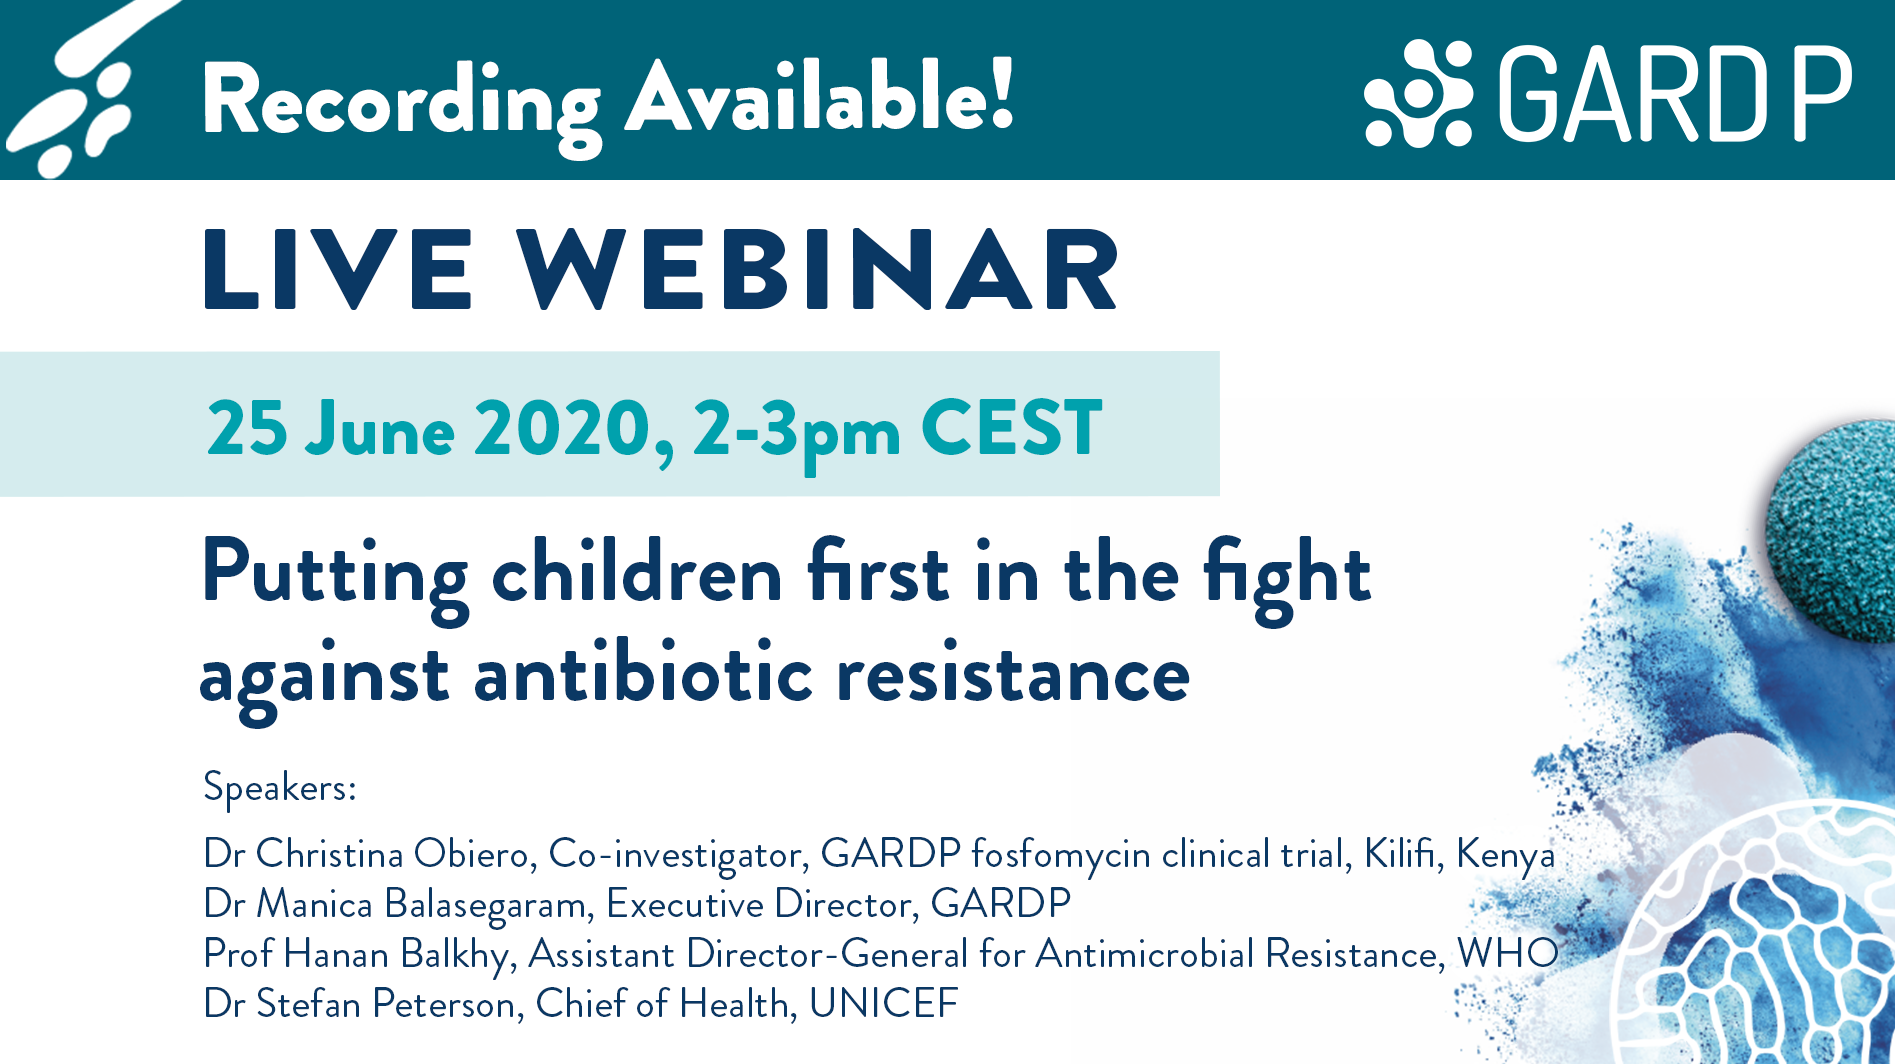 Putting children first in the fight against antibiotic resistance